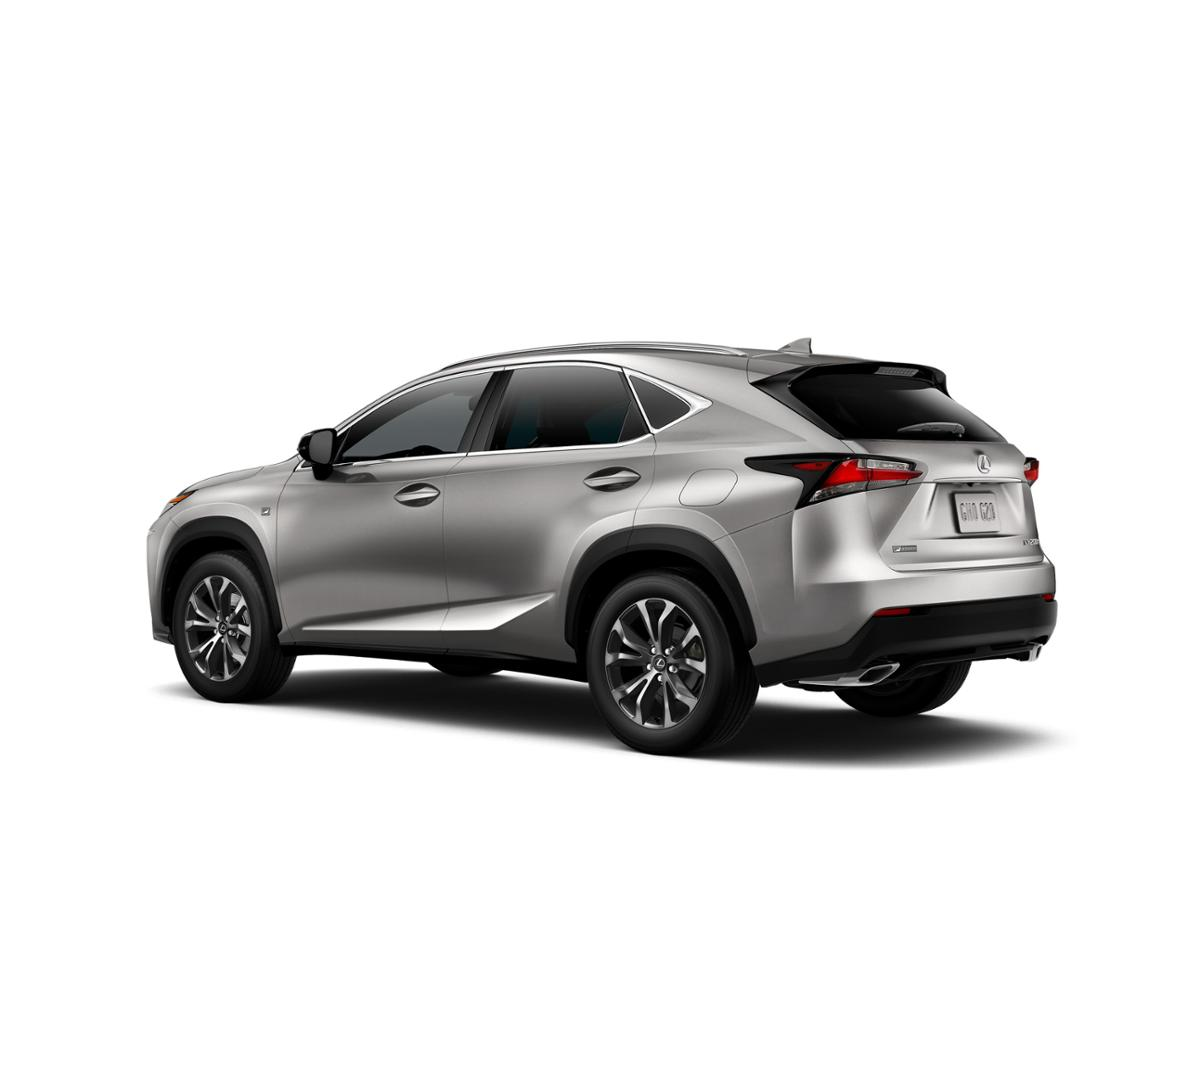 Used Lexus In Nj: 2017 Lexus NX Turbo F SPORT In Atomic Silver For Sale In